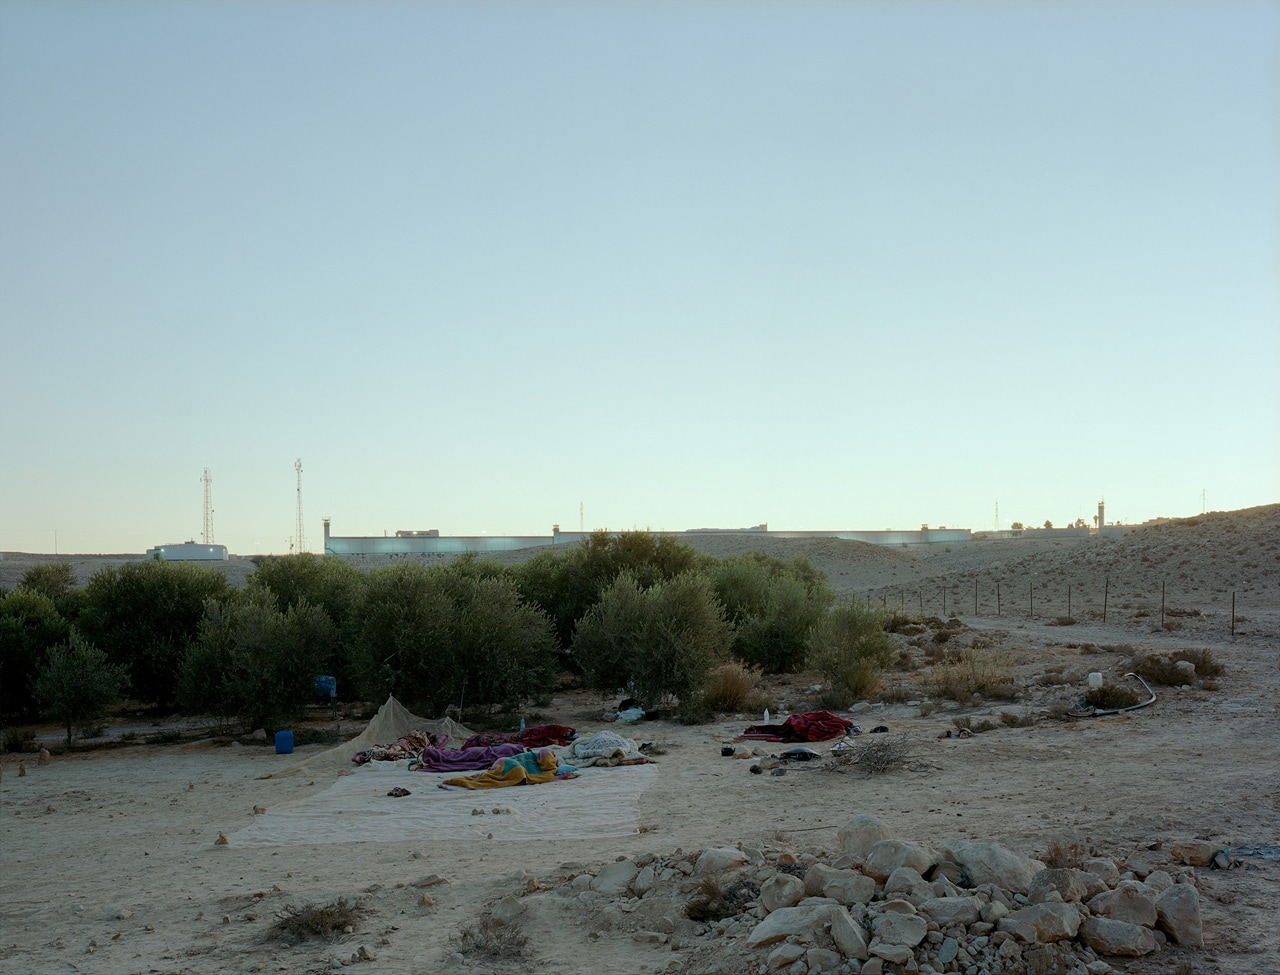 Jeff Wall, Daybreak, 2011. Image: © Jeff Wall